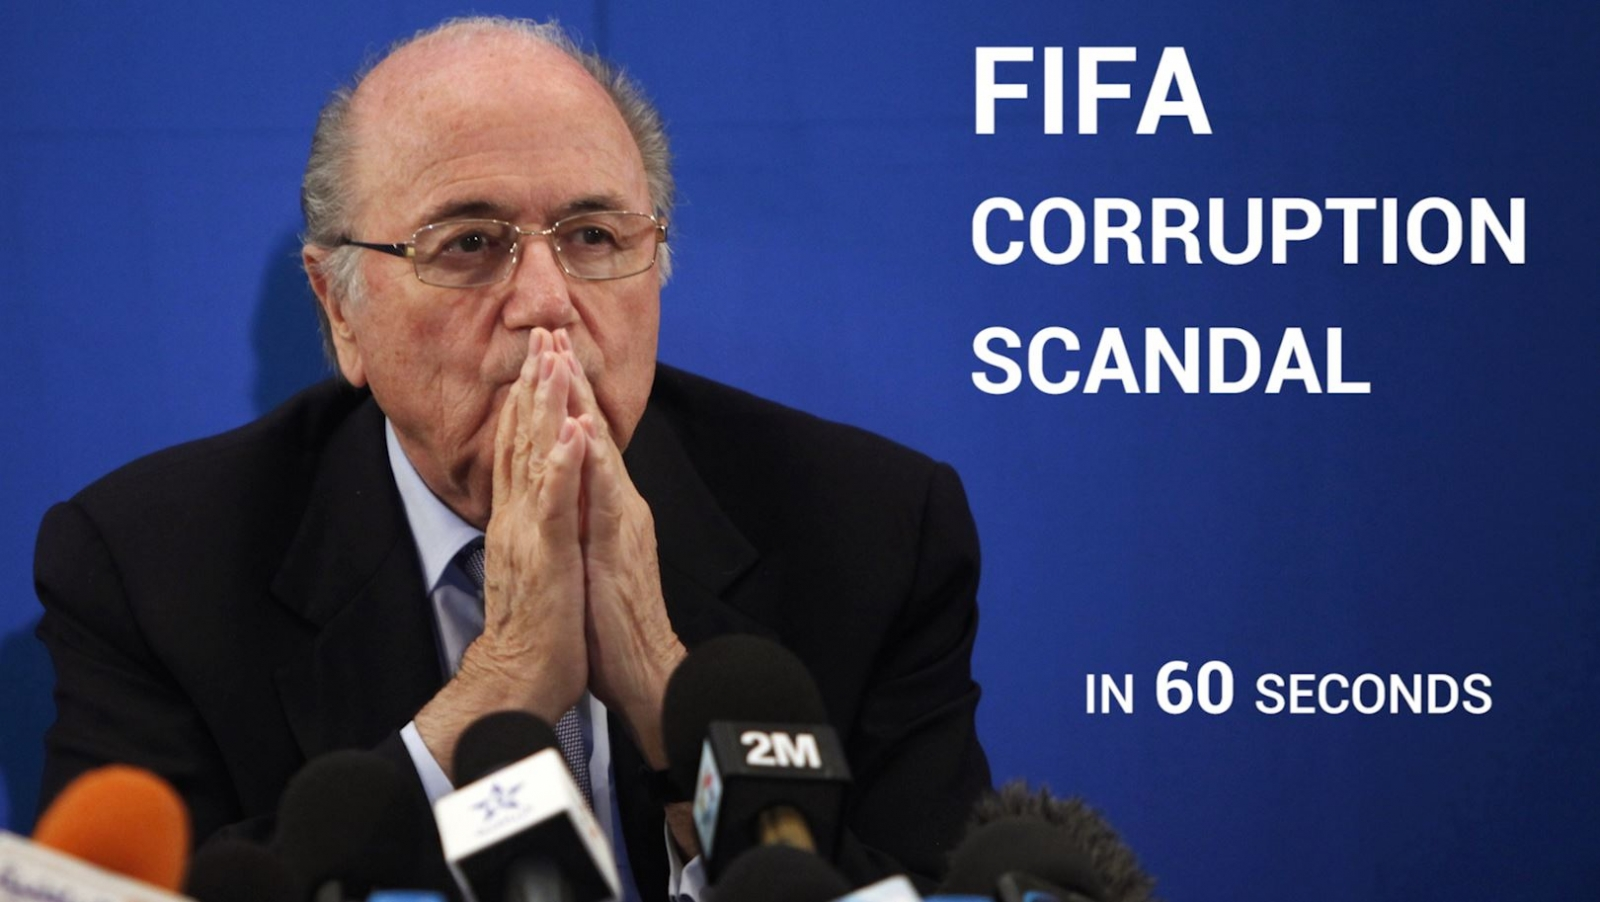 Fifa corruption scandal